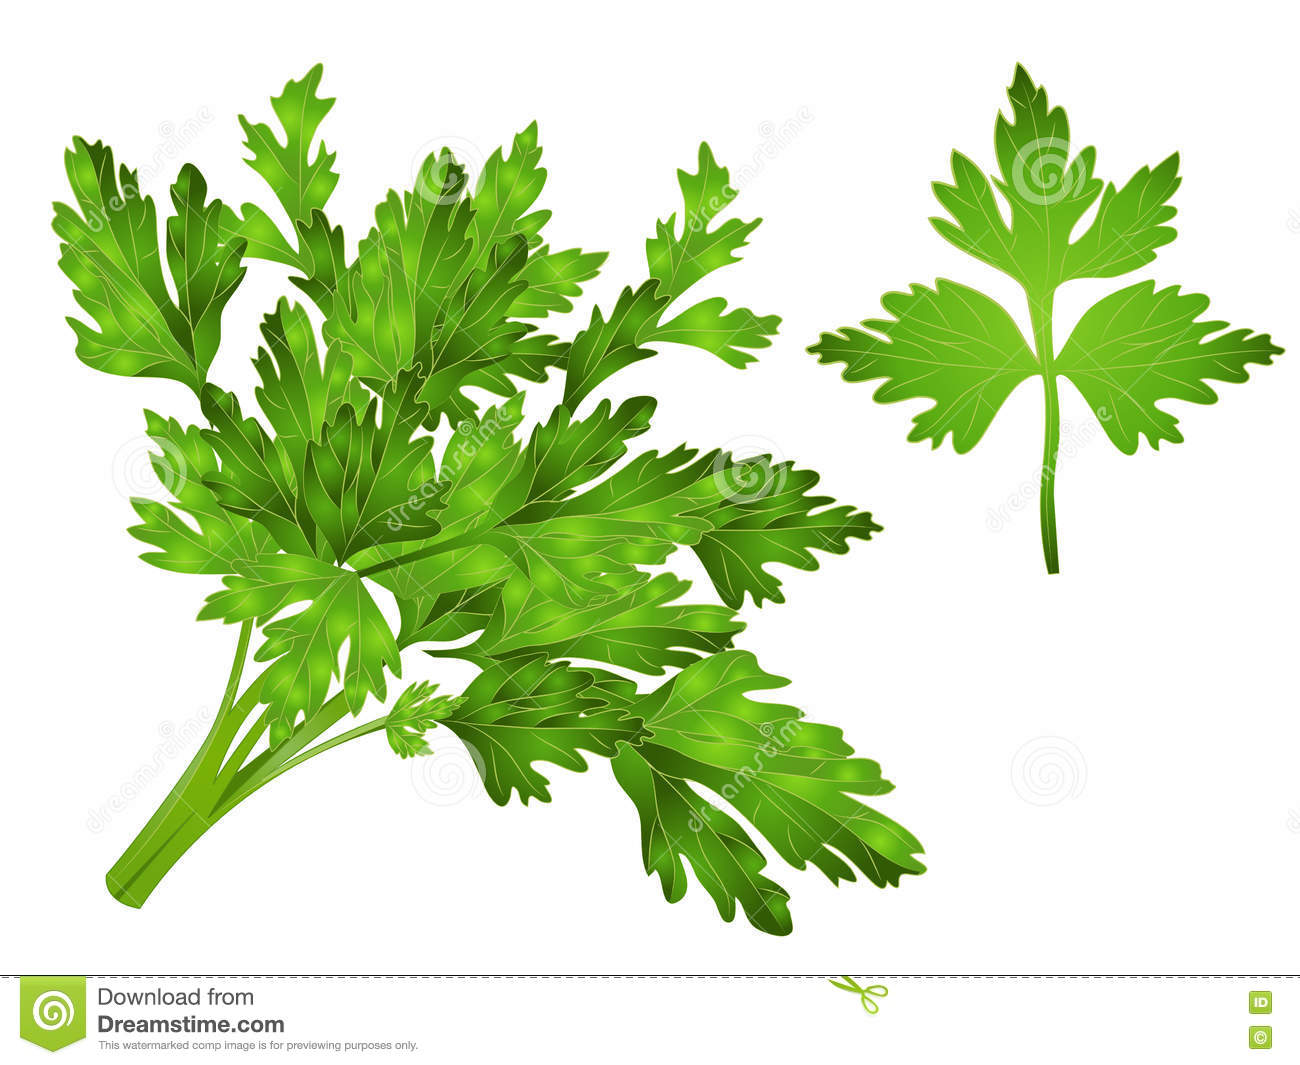 Coriander Leaves Clipart Stock Photo.